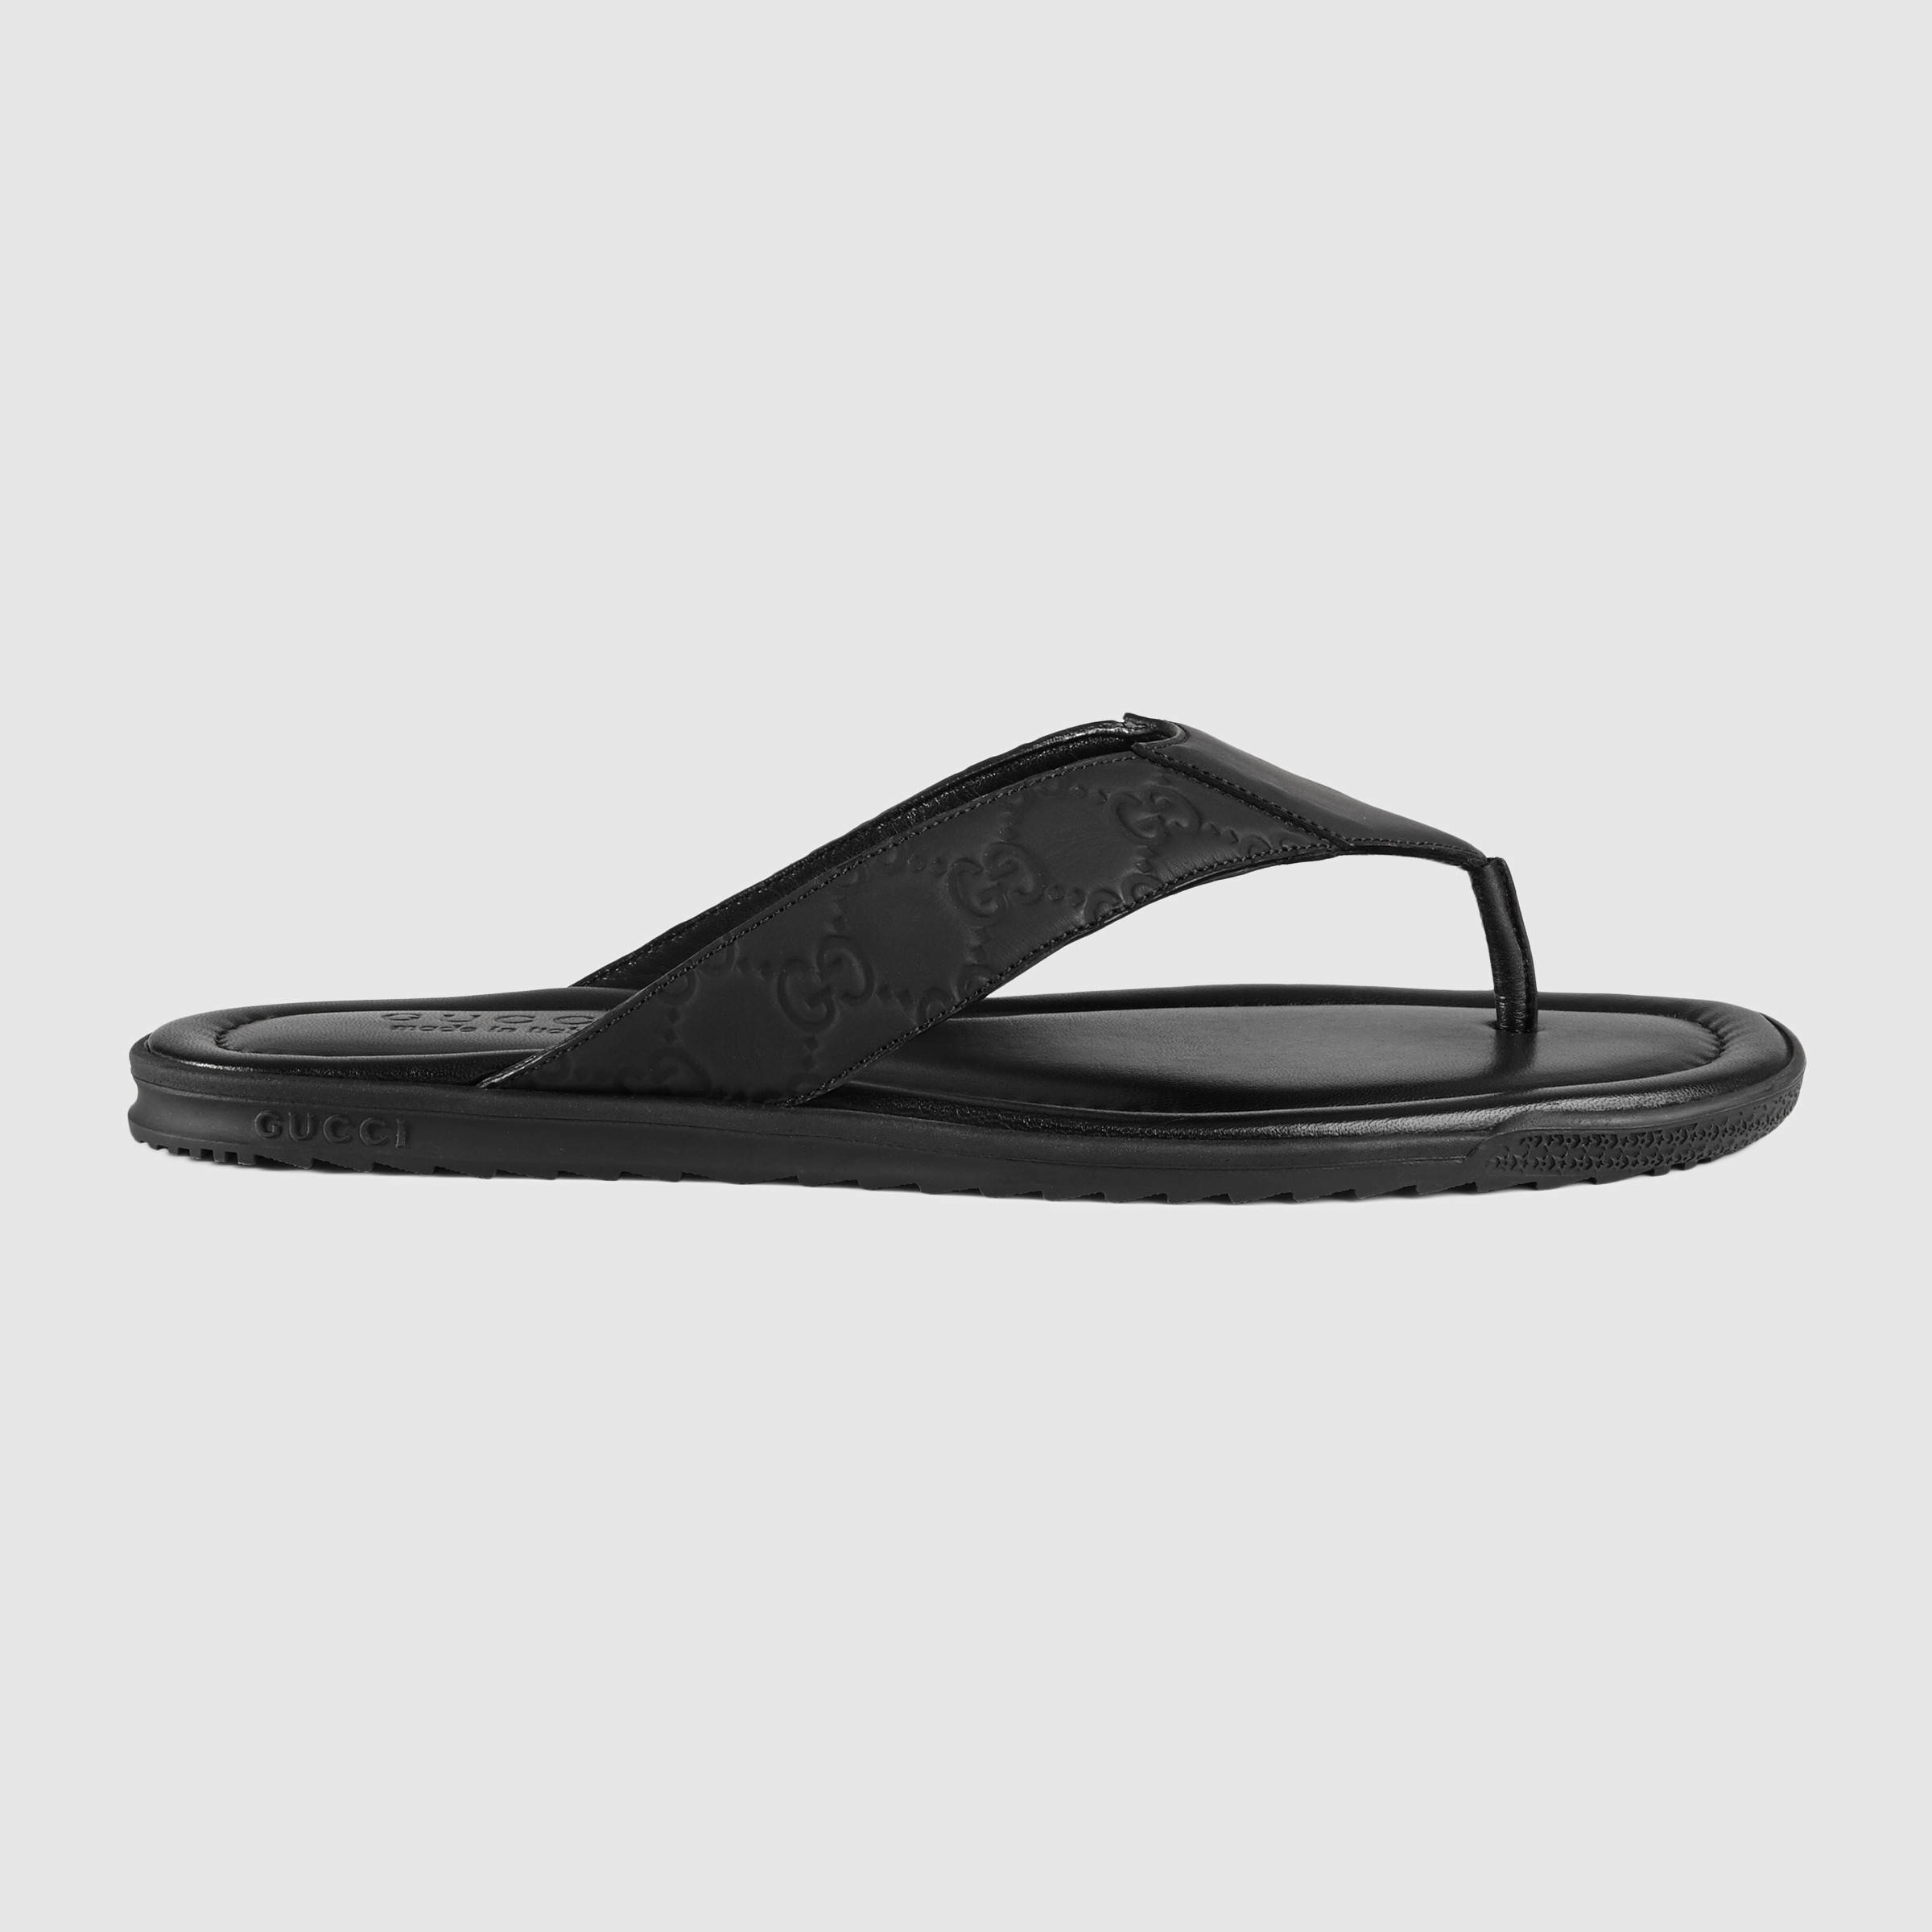 34f2810df Lyst - Gucci Rubberized Leather Thong Sandal in Black for Men